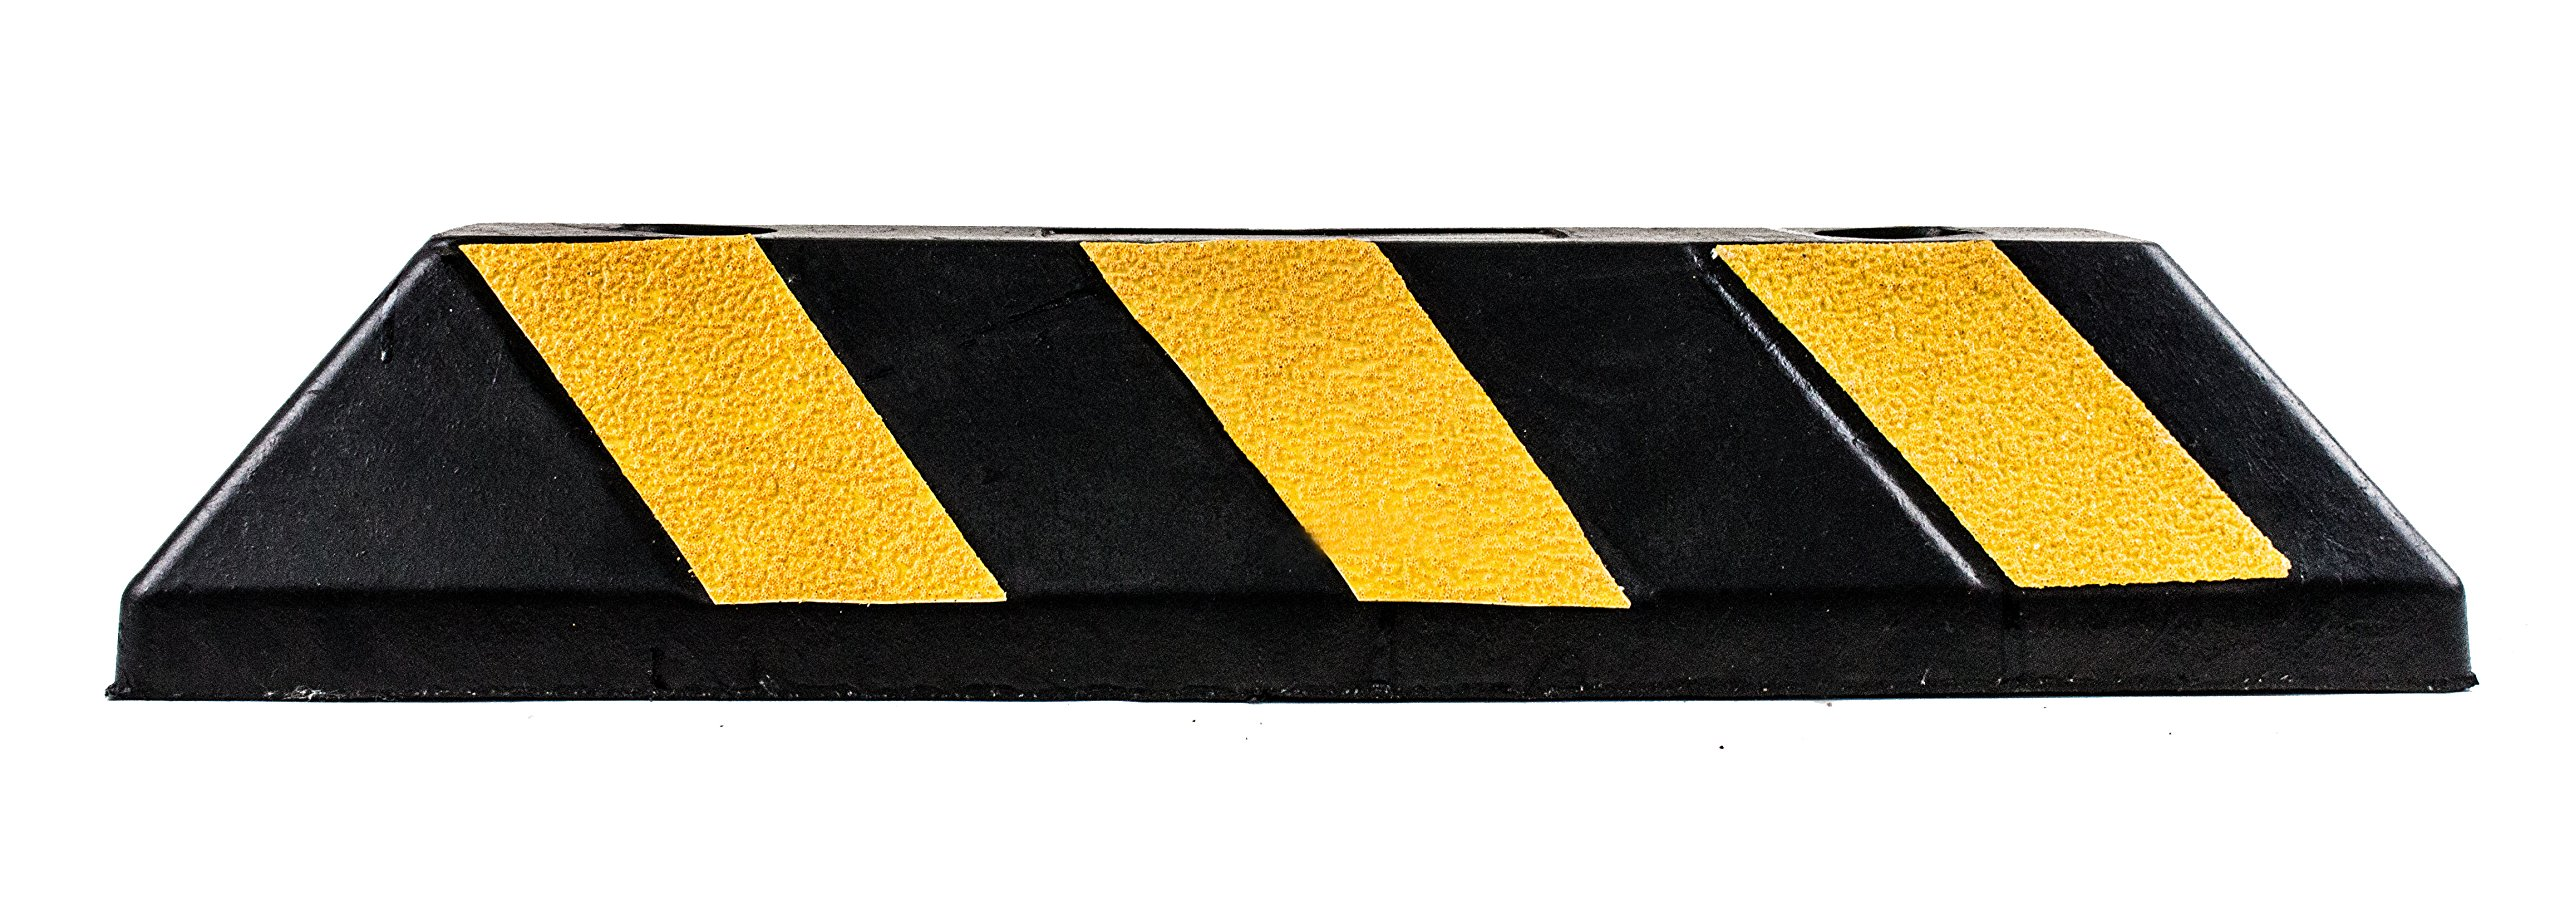 RK-BP22 Rubber Curb Truck Parking Block, 22 -Inch by RK (Image #2)